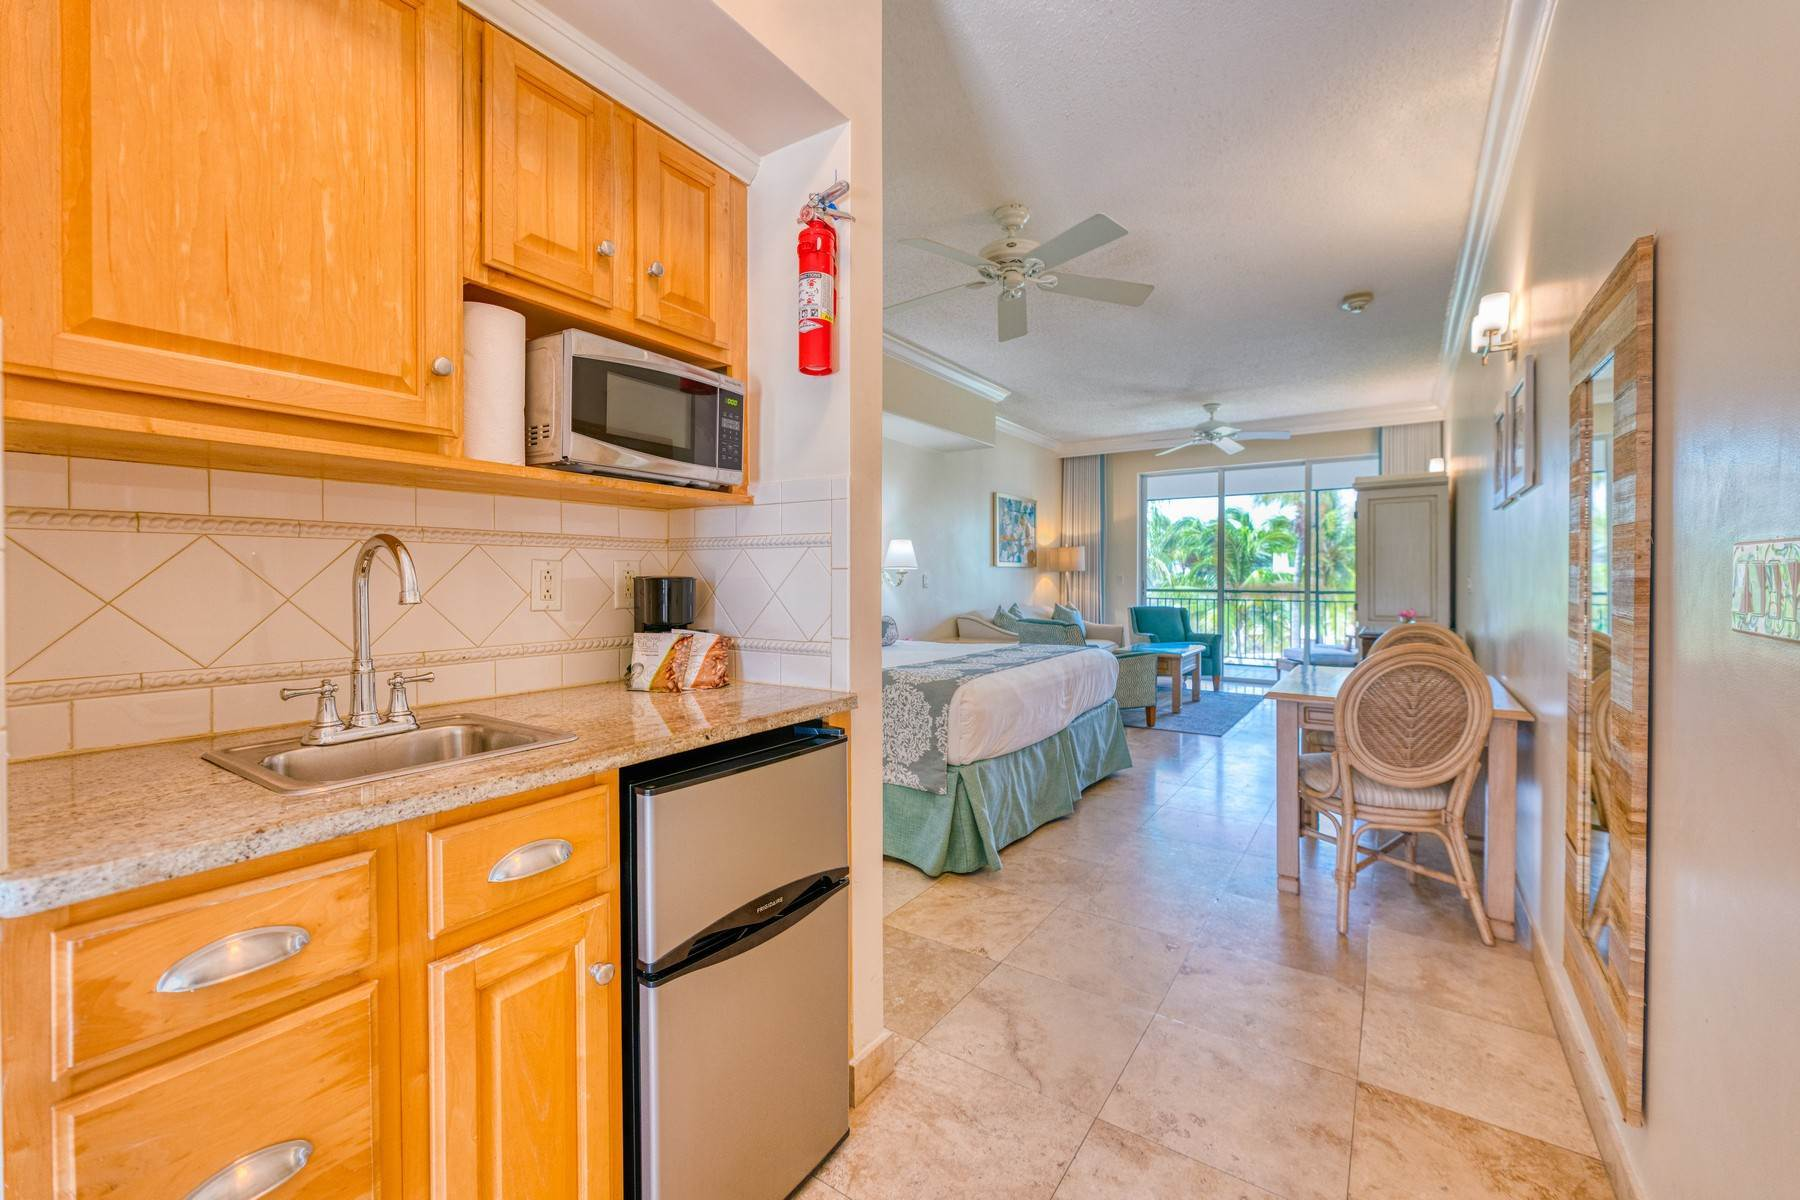 11. Condominiums for Sale at The Sands at Grace Bay - Suite 5304 The Sands on Grace Bay Grace Bay, Providenciales TC Turks And Caicos Islands